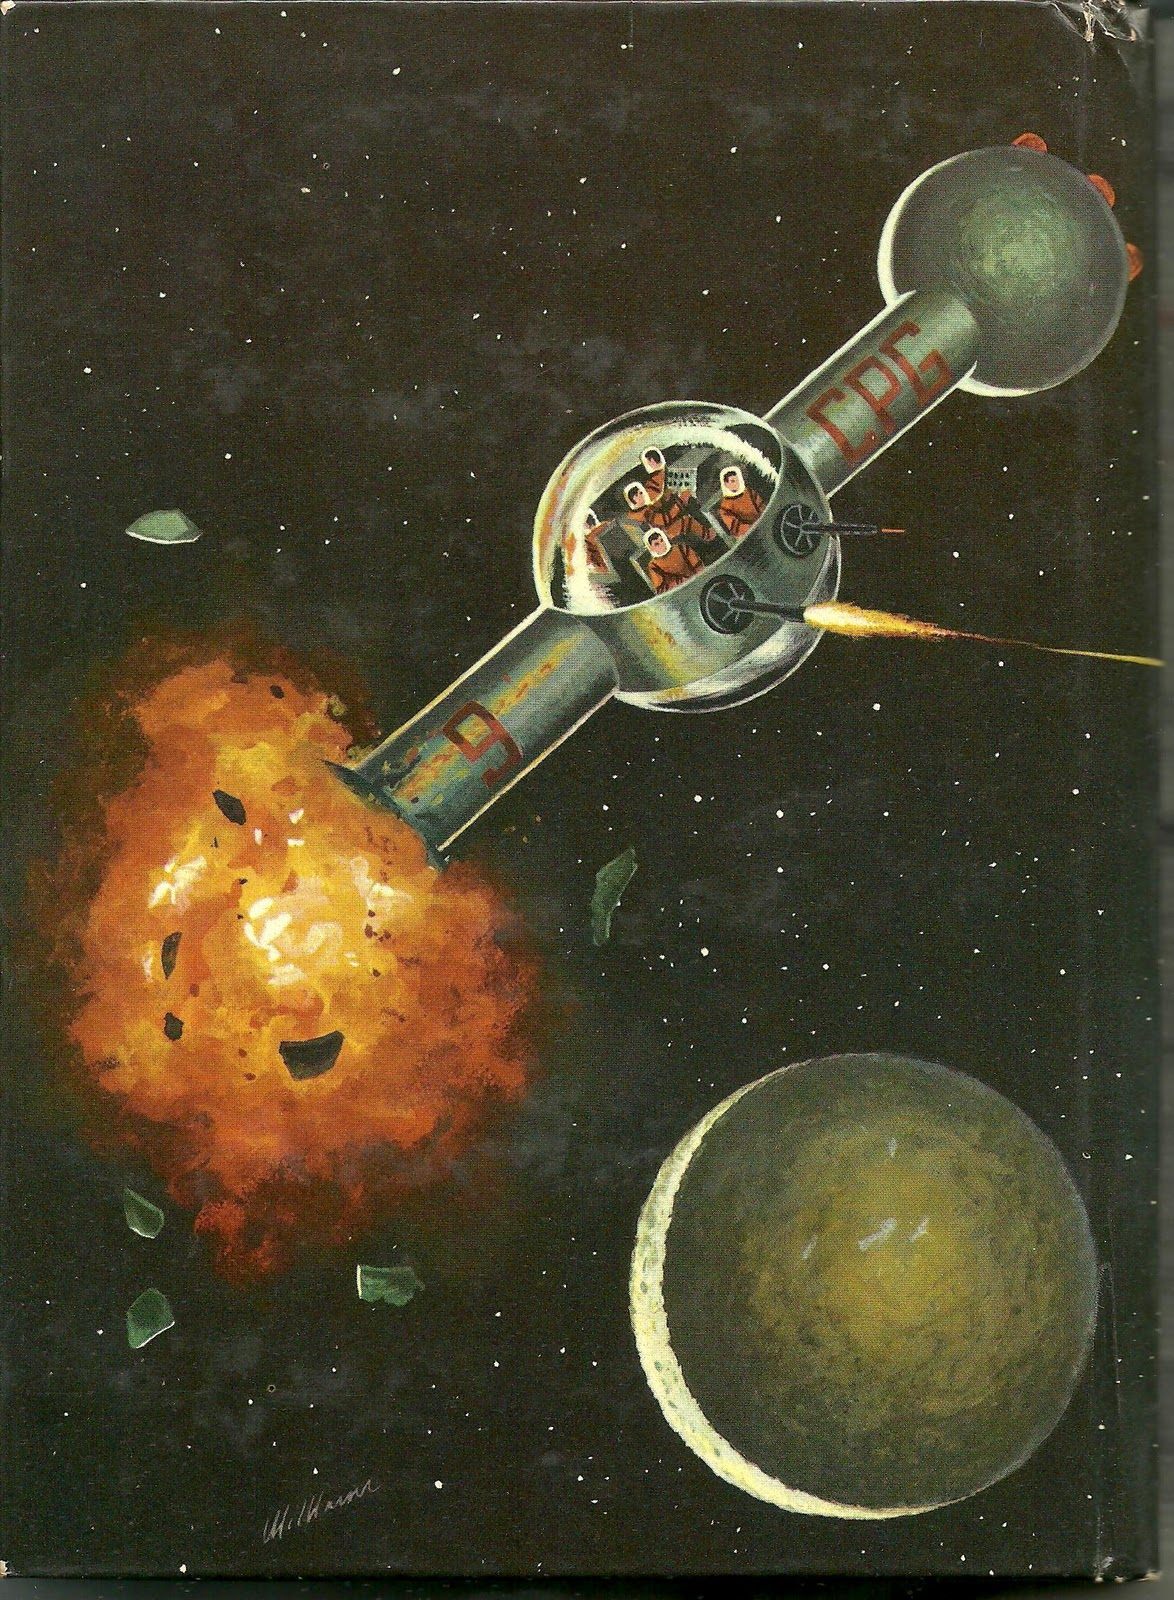 Vintage Technology Obsessions: Juvenile Cold War Space Fiction